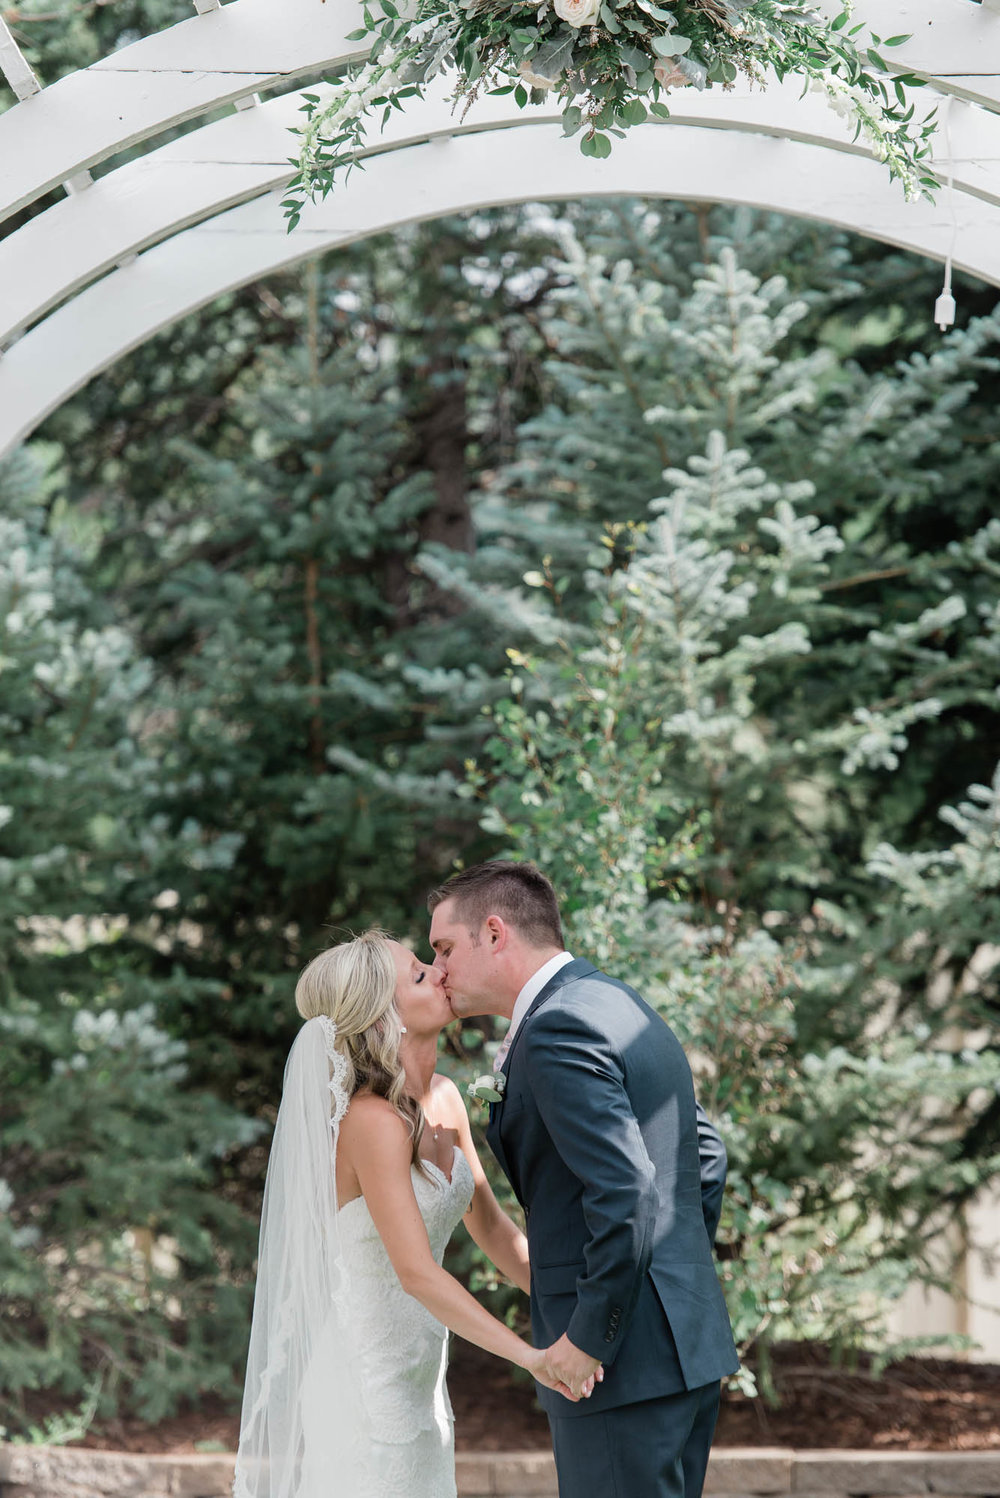 Colorado Outdoor Wedding Ceremony Photography at Wedgewood